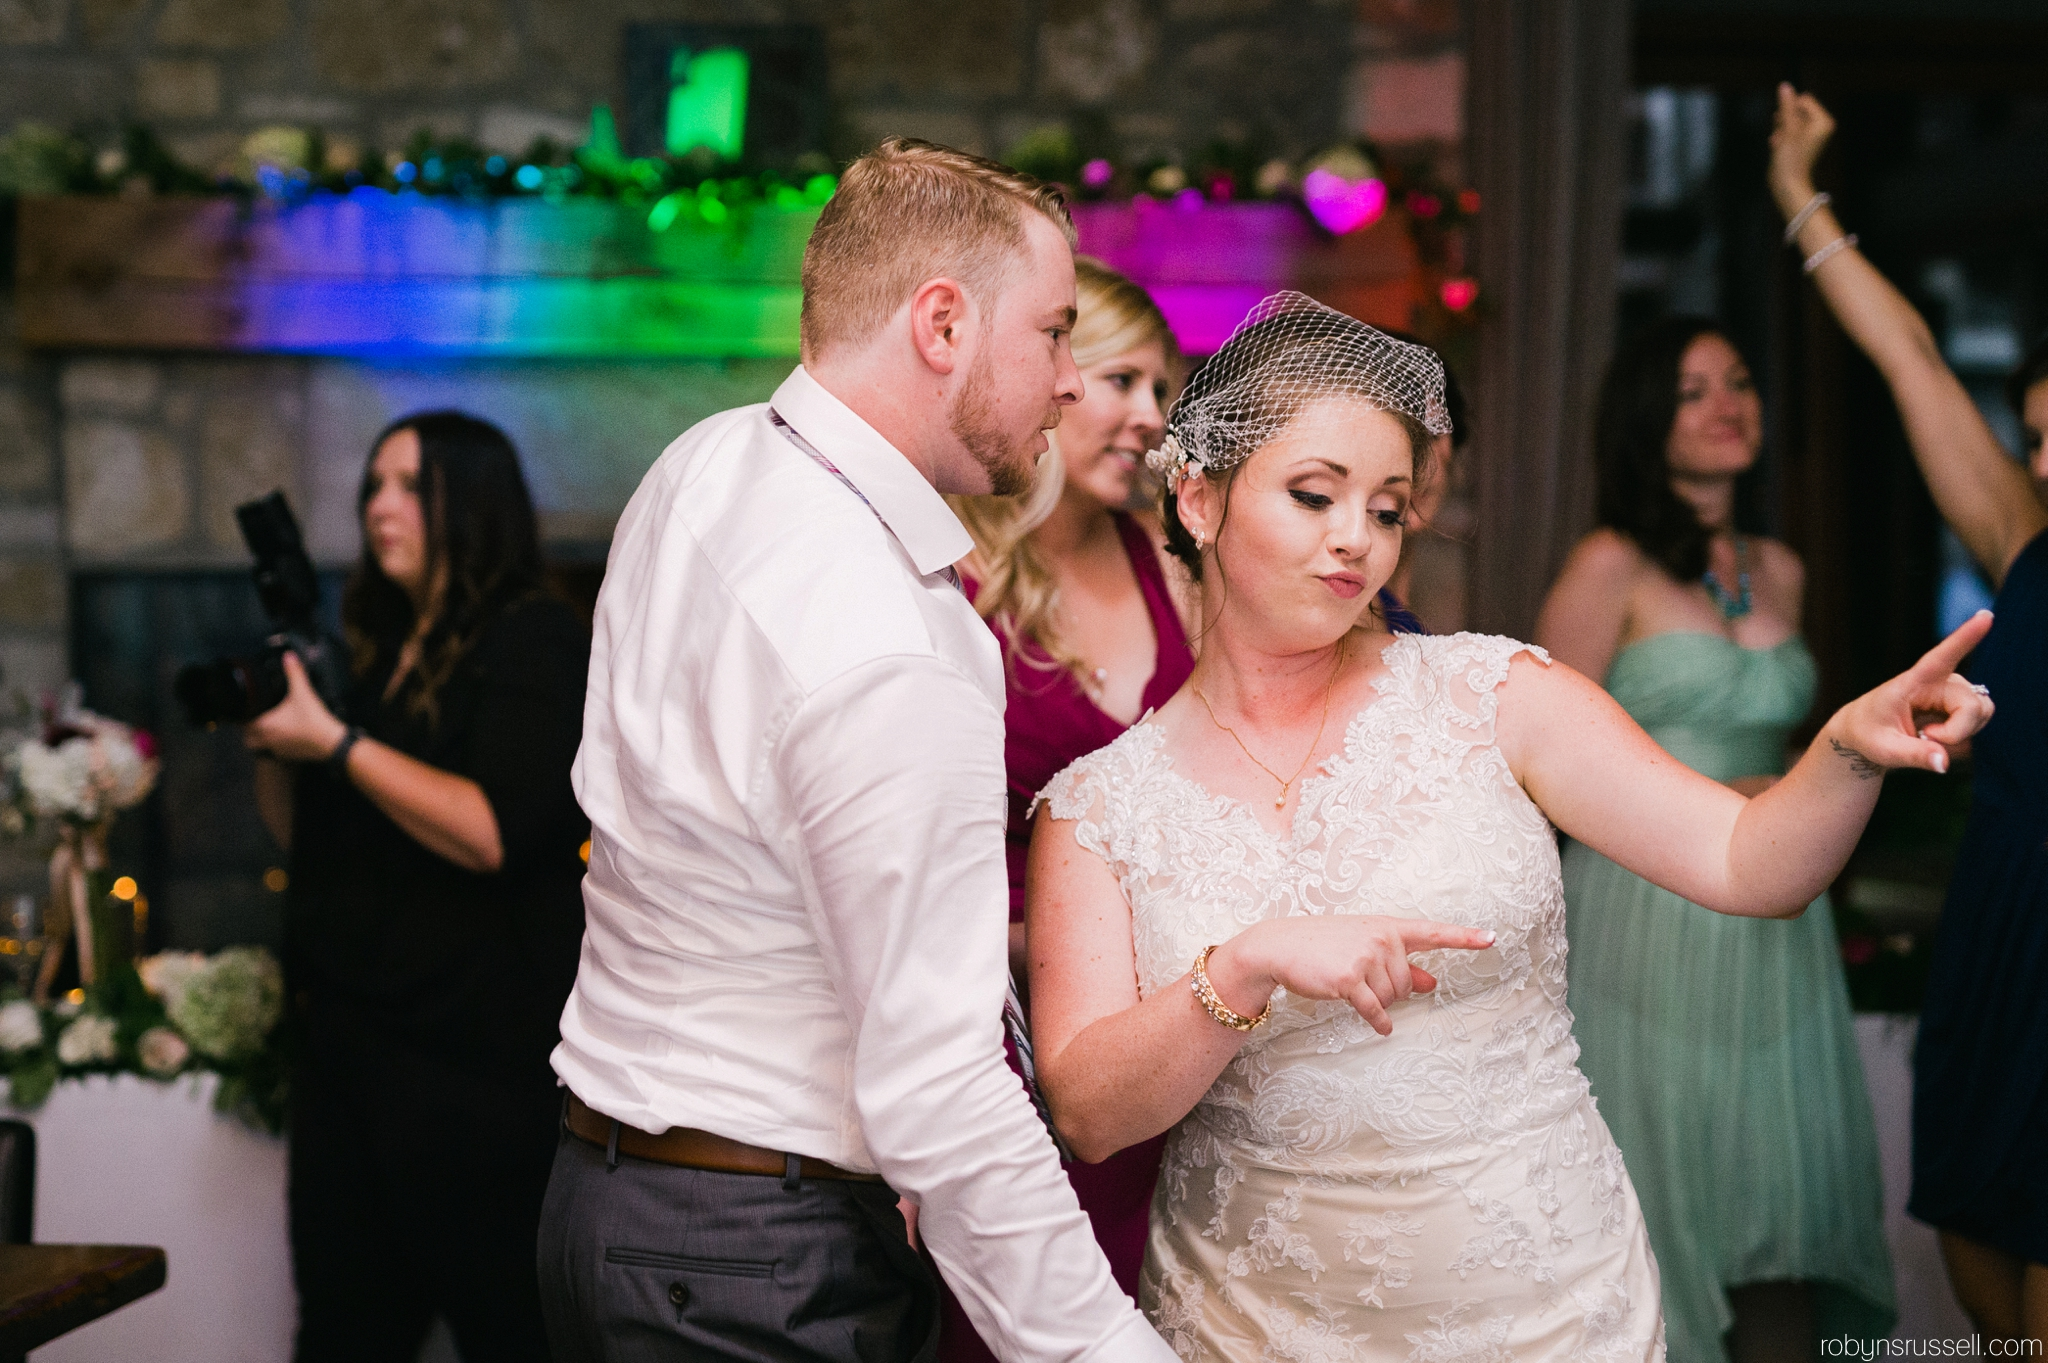 64-bride-and-brother-tribute-dance-to-father.jpg